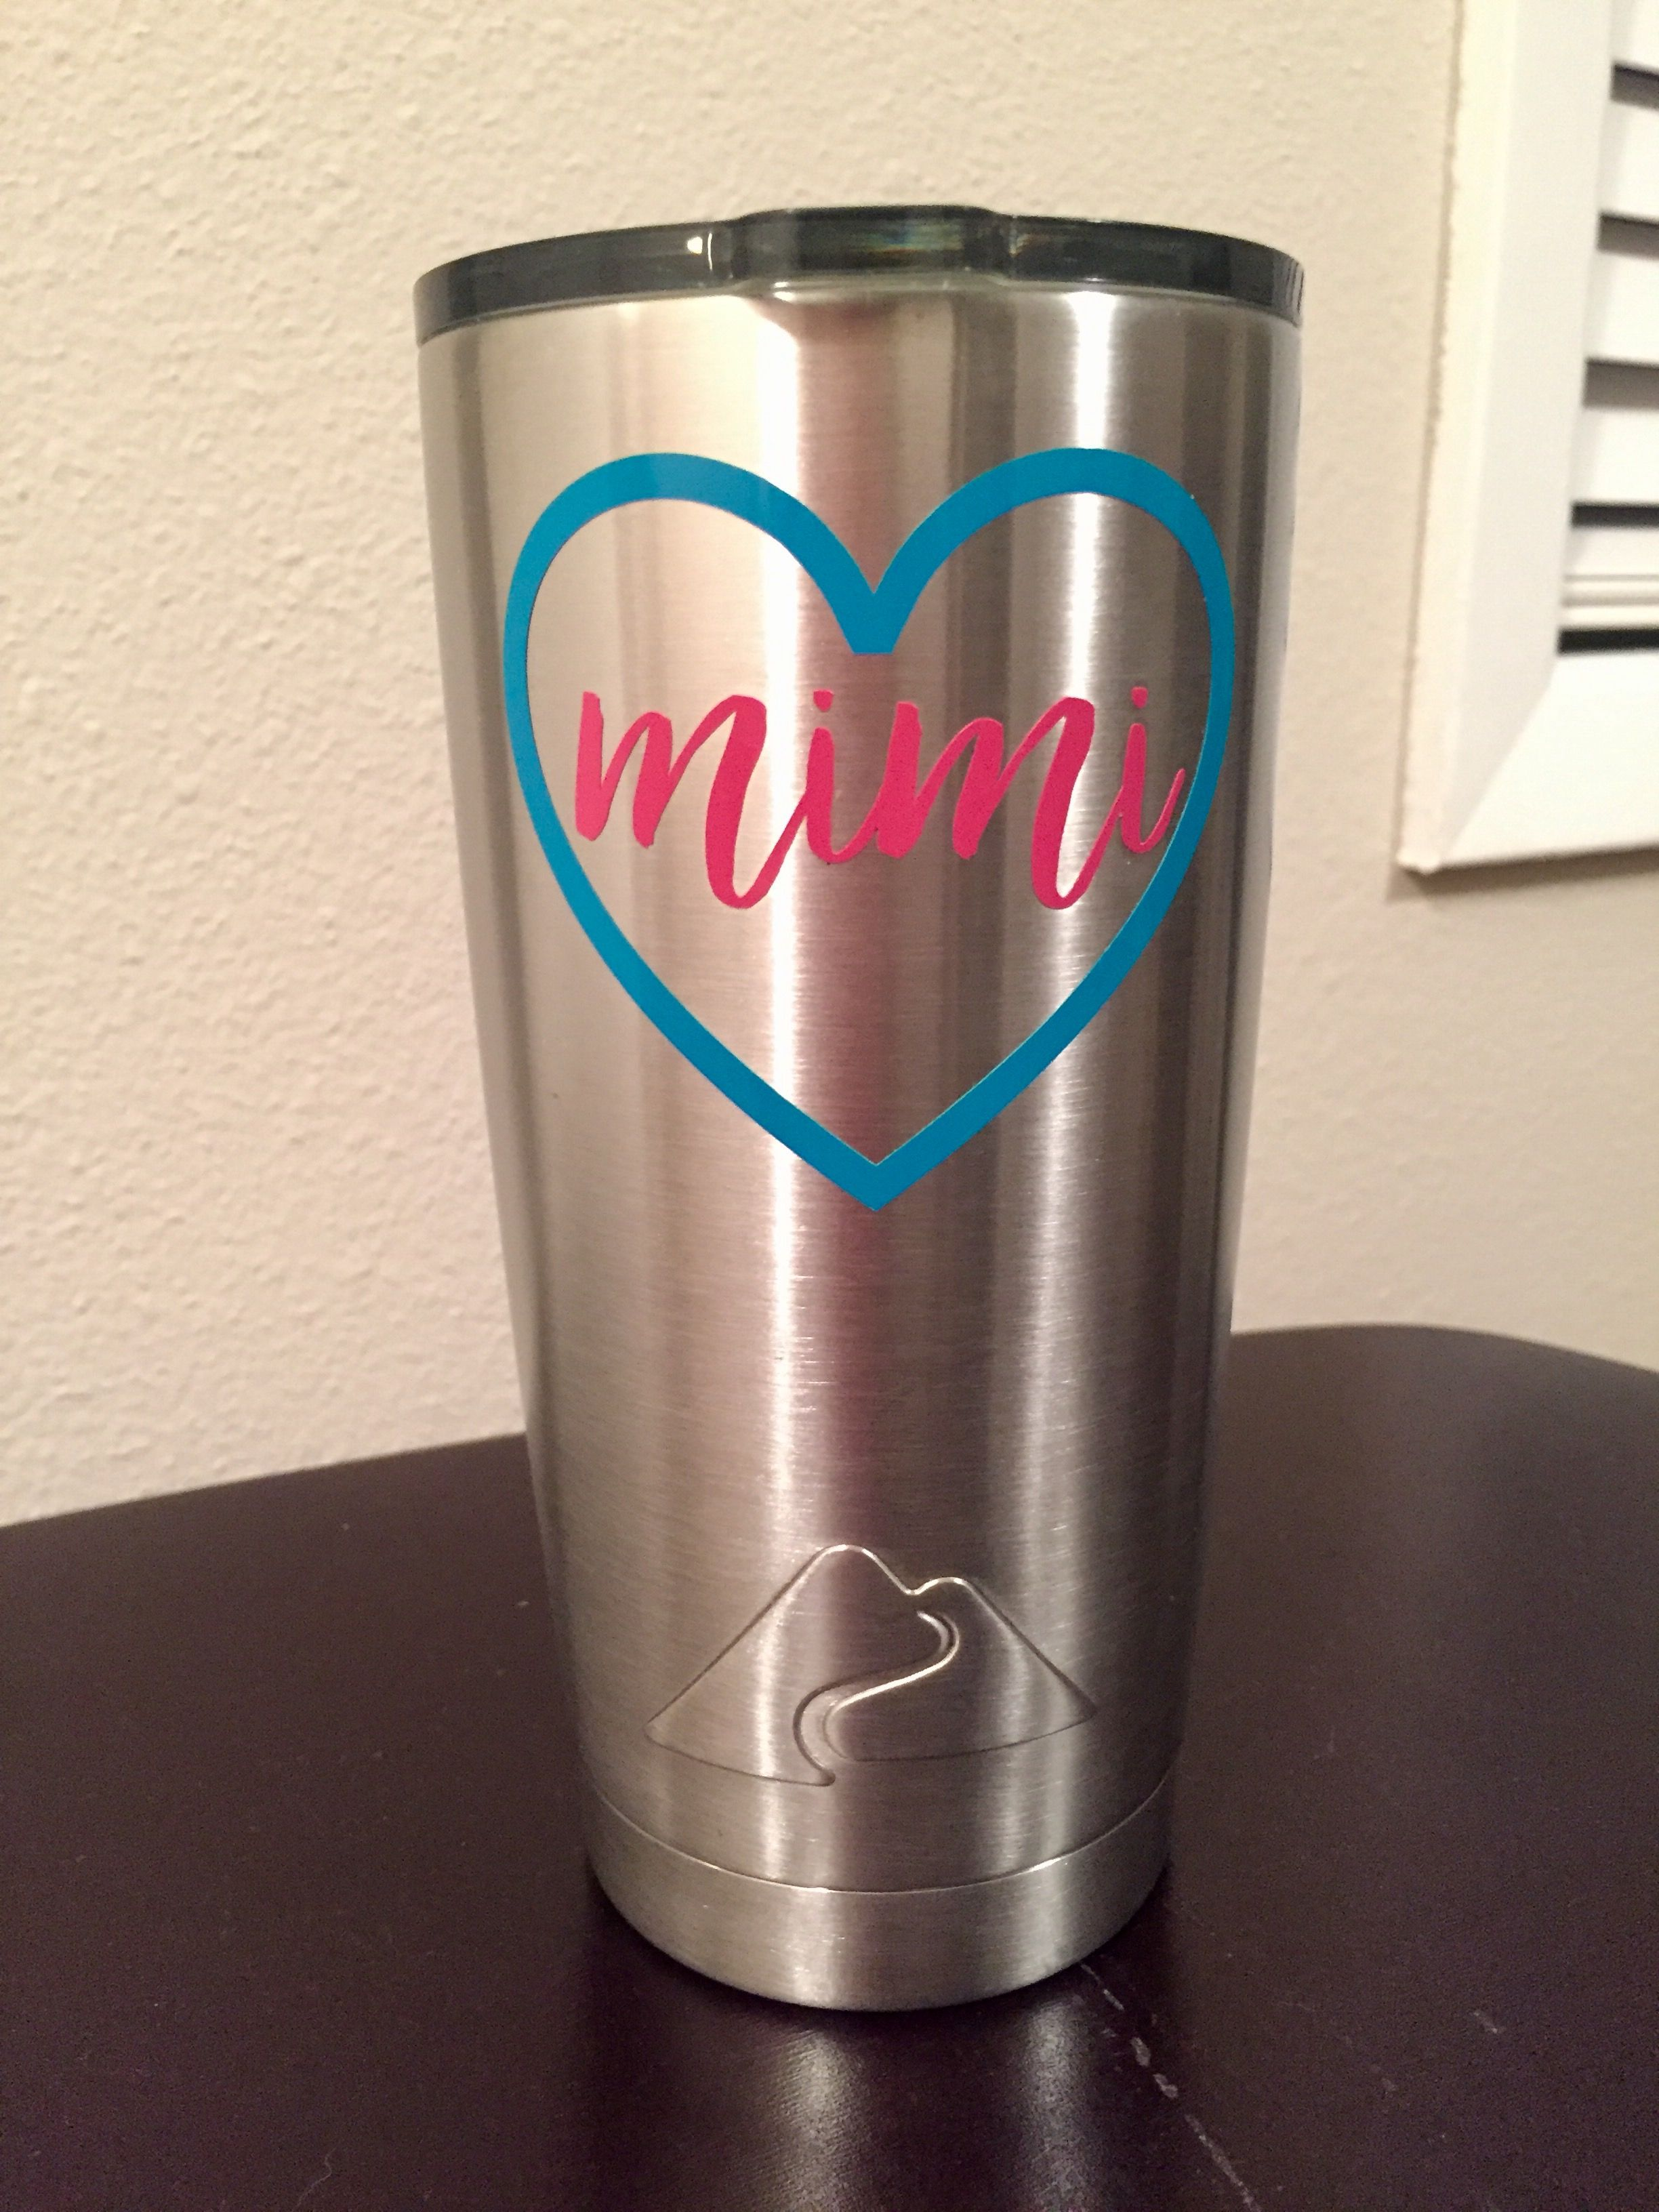 f03478f4d3f Pin by Melissa Lambert on Tumbler Decal Ideas | Ozark cup, Mugs, Travel mug